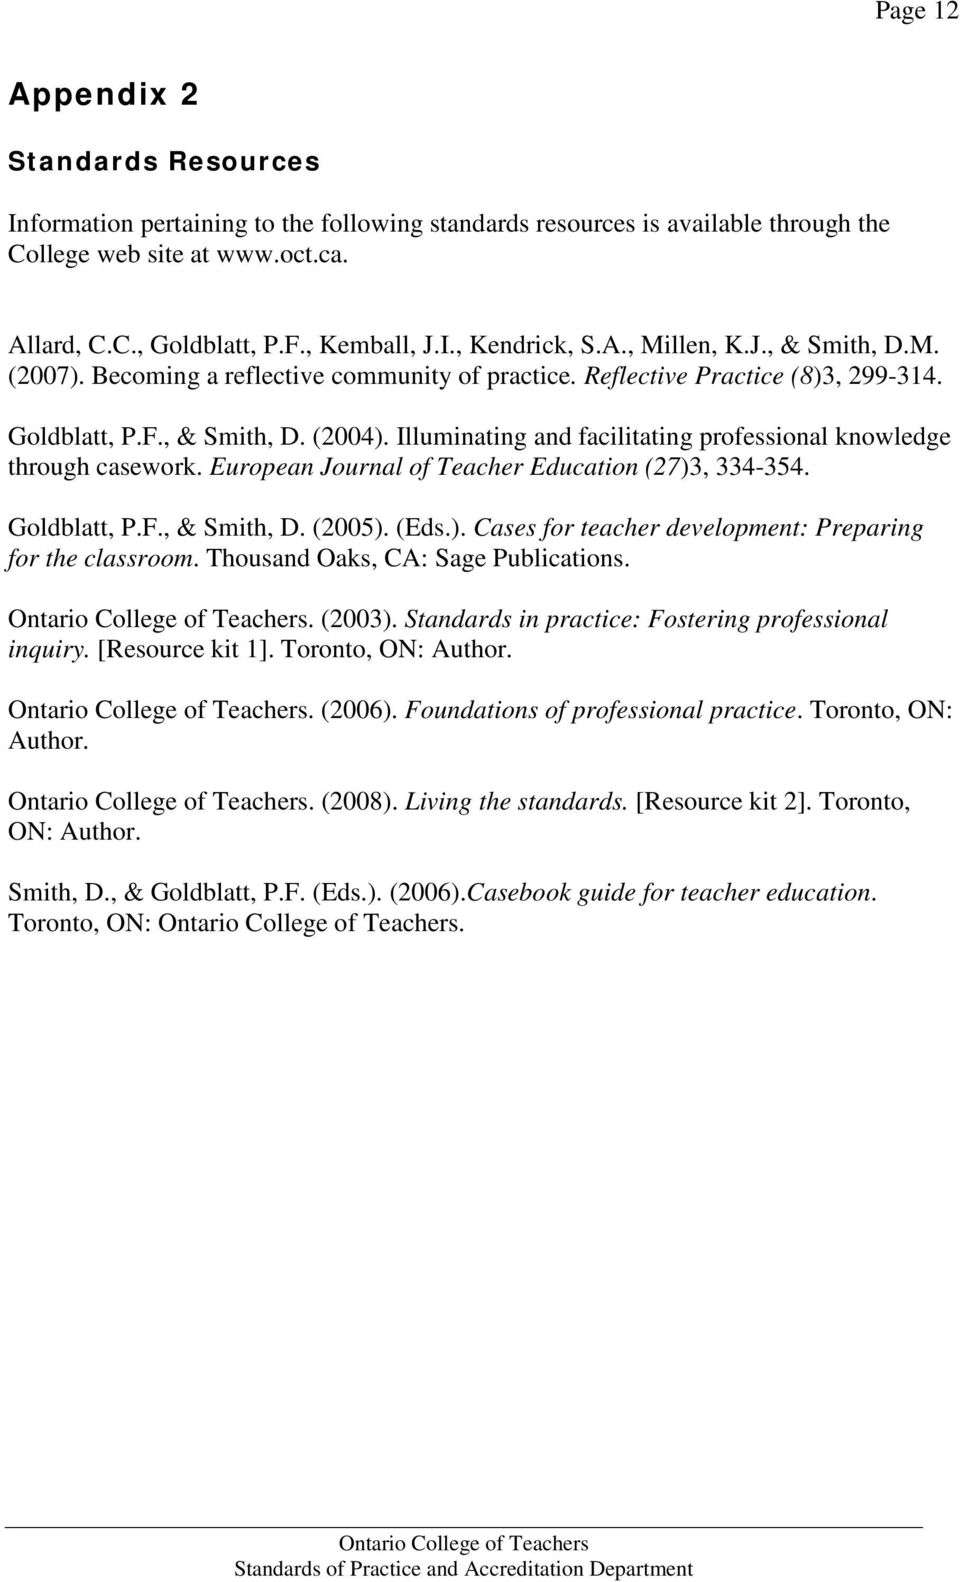 Illuminating and facilitating professional knowledge through casework. European Journal of Teacher Education (27)3, 334-354. Goldblatt, P.F., & Smith, D. (2005). (Eds.). Cases for teacher development: Preparing for the classroom.